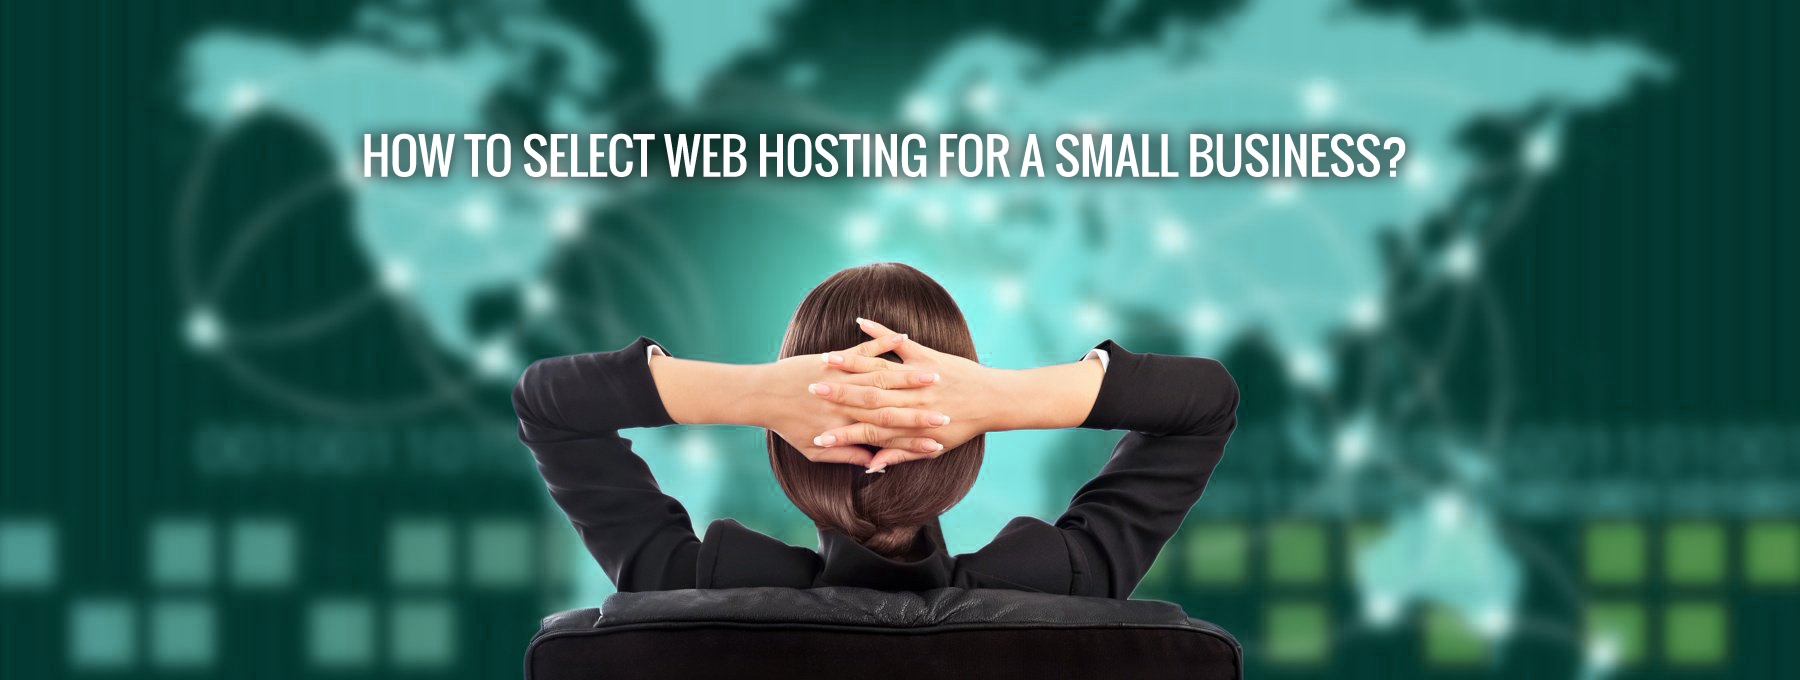 Managed Web Hosting_Website Design & Development Company_Smartinfosys.net